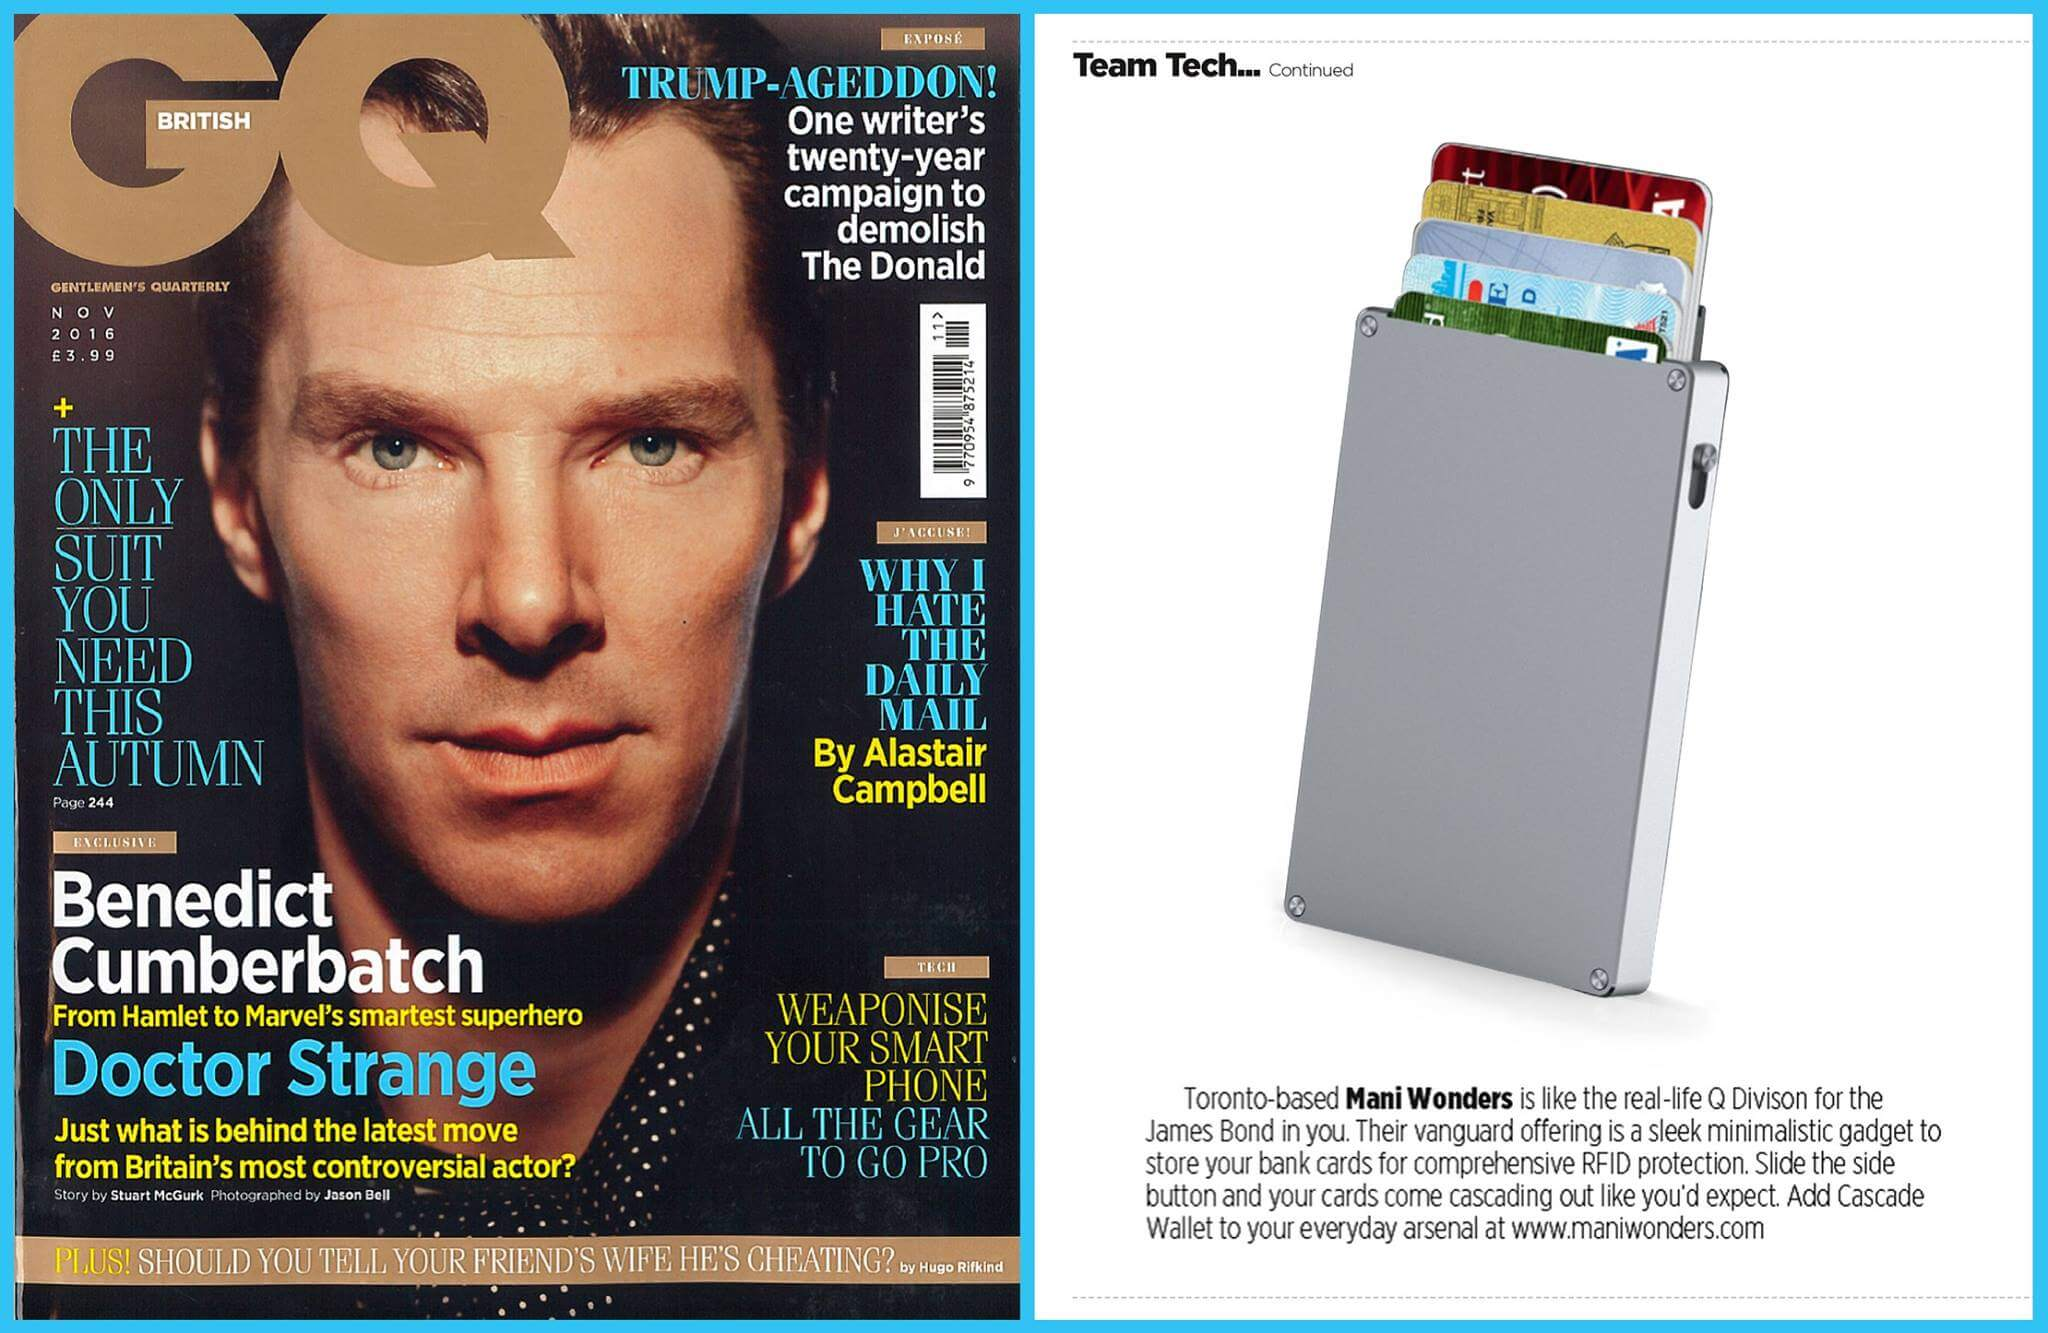 Benedict cumberbatch GQ November 2016 Issue presents Toronto based Mani Wonders is like the real-life Q division for the James Bond in you. Their Vanguard offering is a sleek minimalistic gadget to store your bank cards for comprehensive RFID protection. Slide the slide button and your cards come cascading out like you'd expect. Add Cascade Wallet to your everyday arsenal at www.www.maniwonders.com